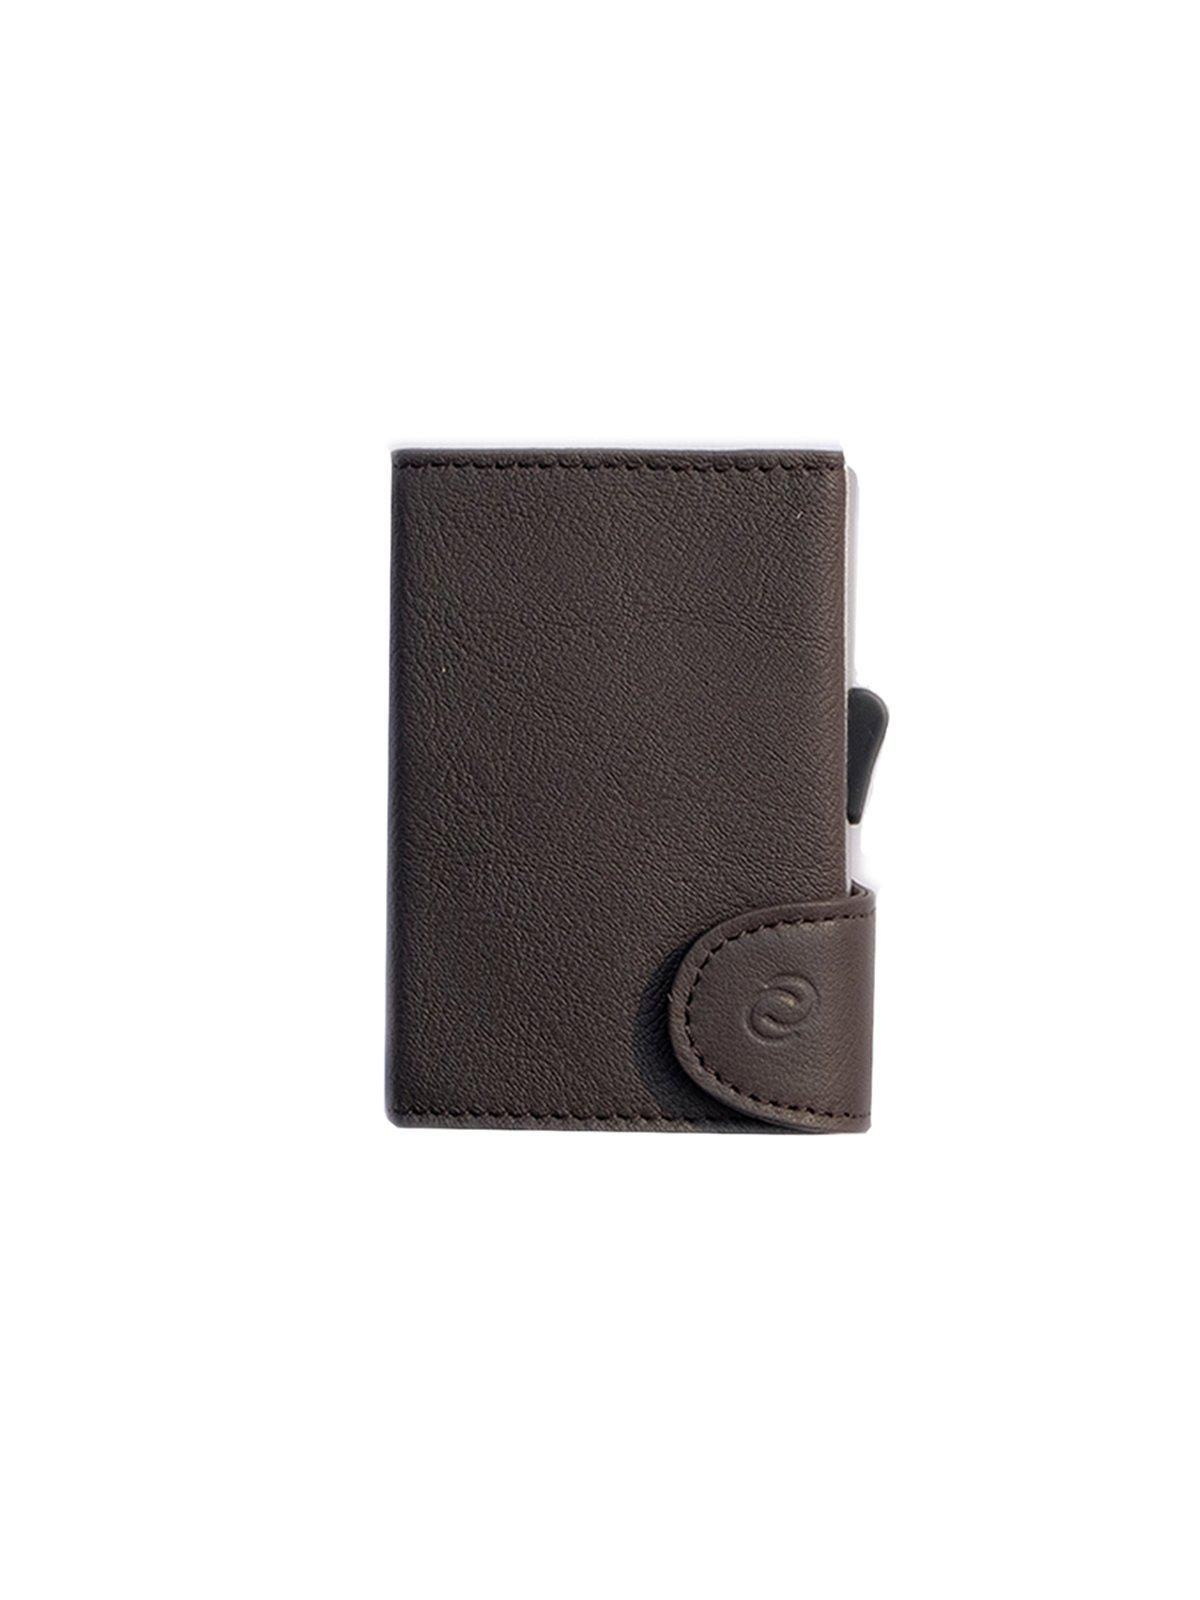 C-Secure Italian Leather RFID Wallet Testa Di Moro - MORE by Morello Indonesia